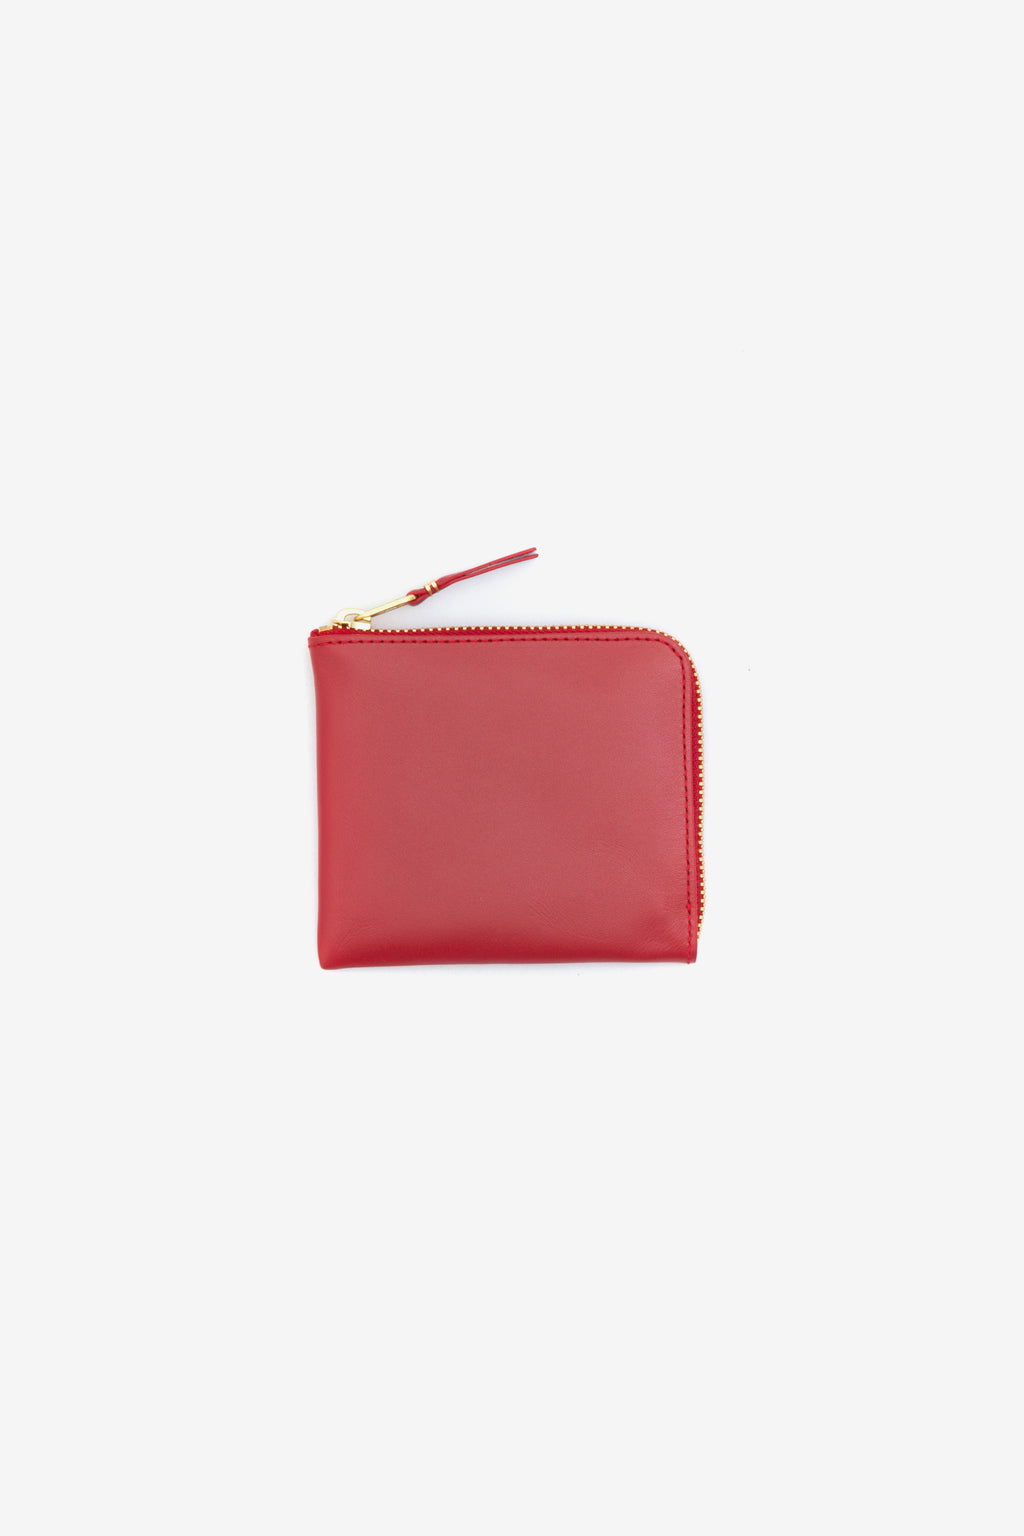 Comme Des Garcons Wallet Classic Red 110mm x 95mm